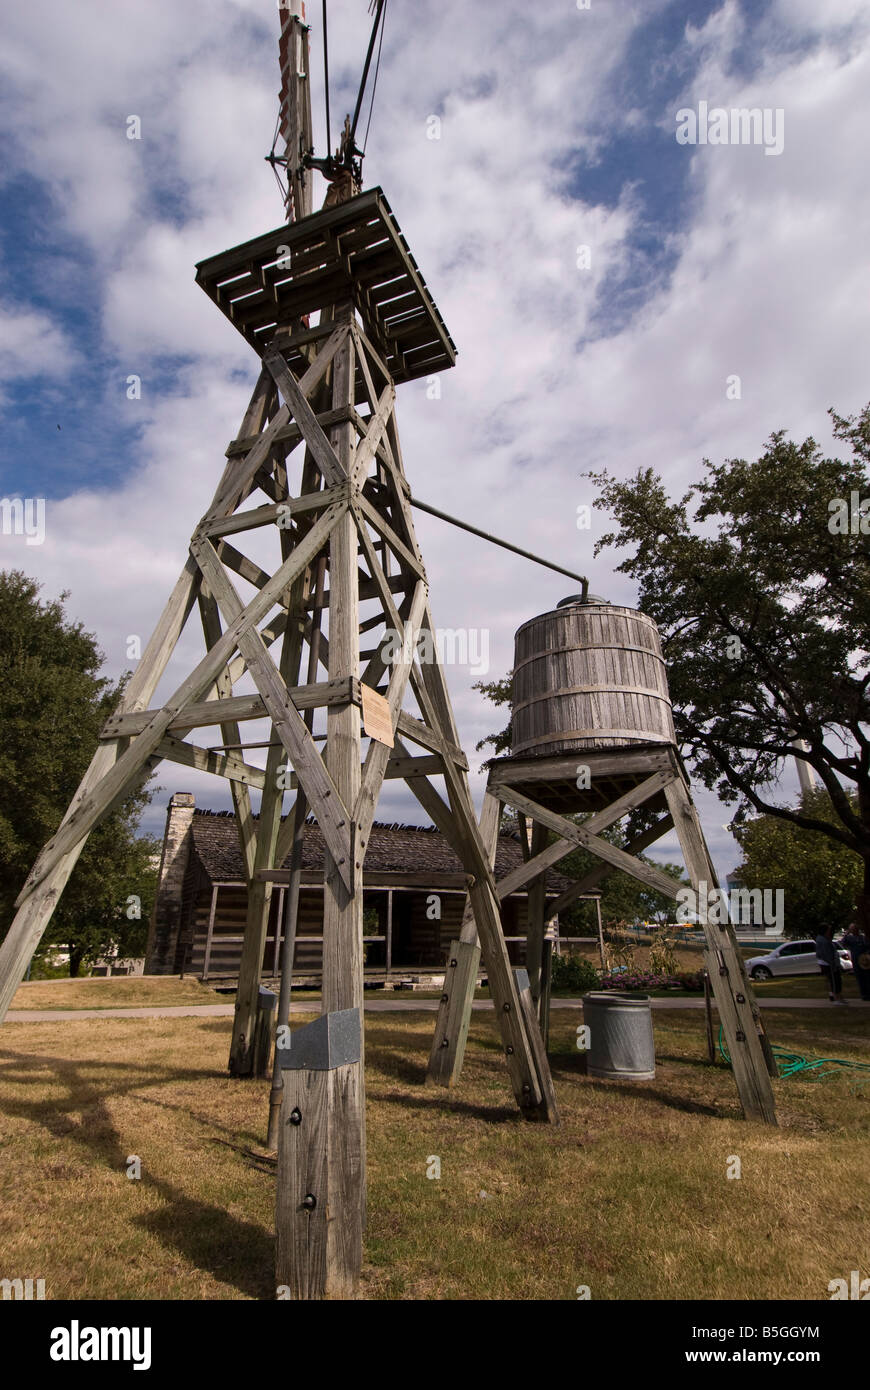 Historic windmill outside Institute of Texan Cultures, San Antonio, Texas. - Stock Image